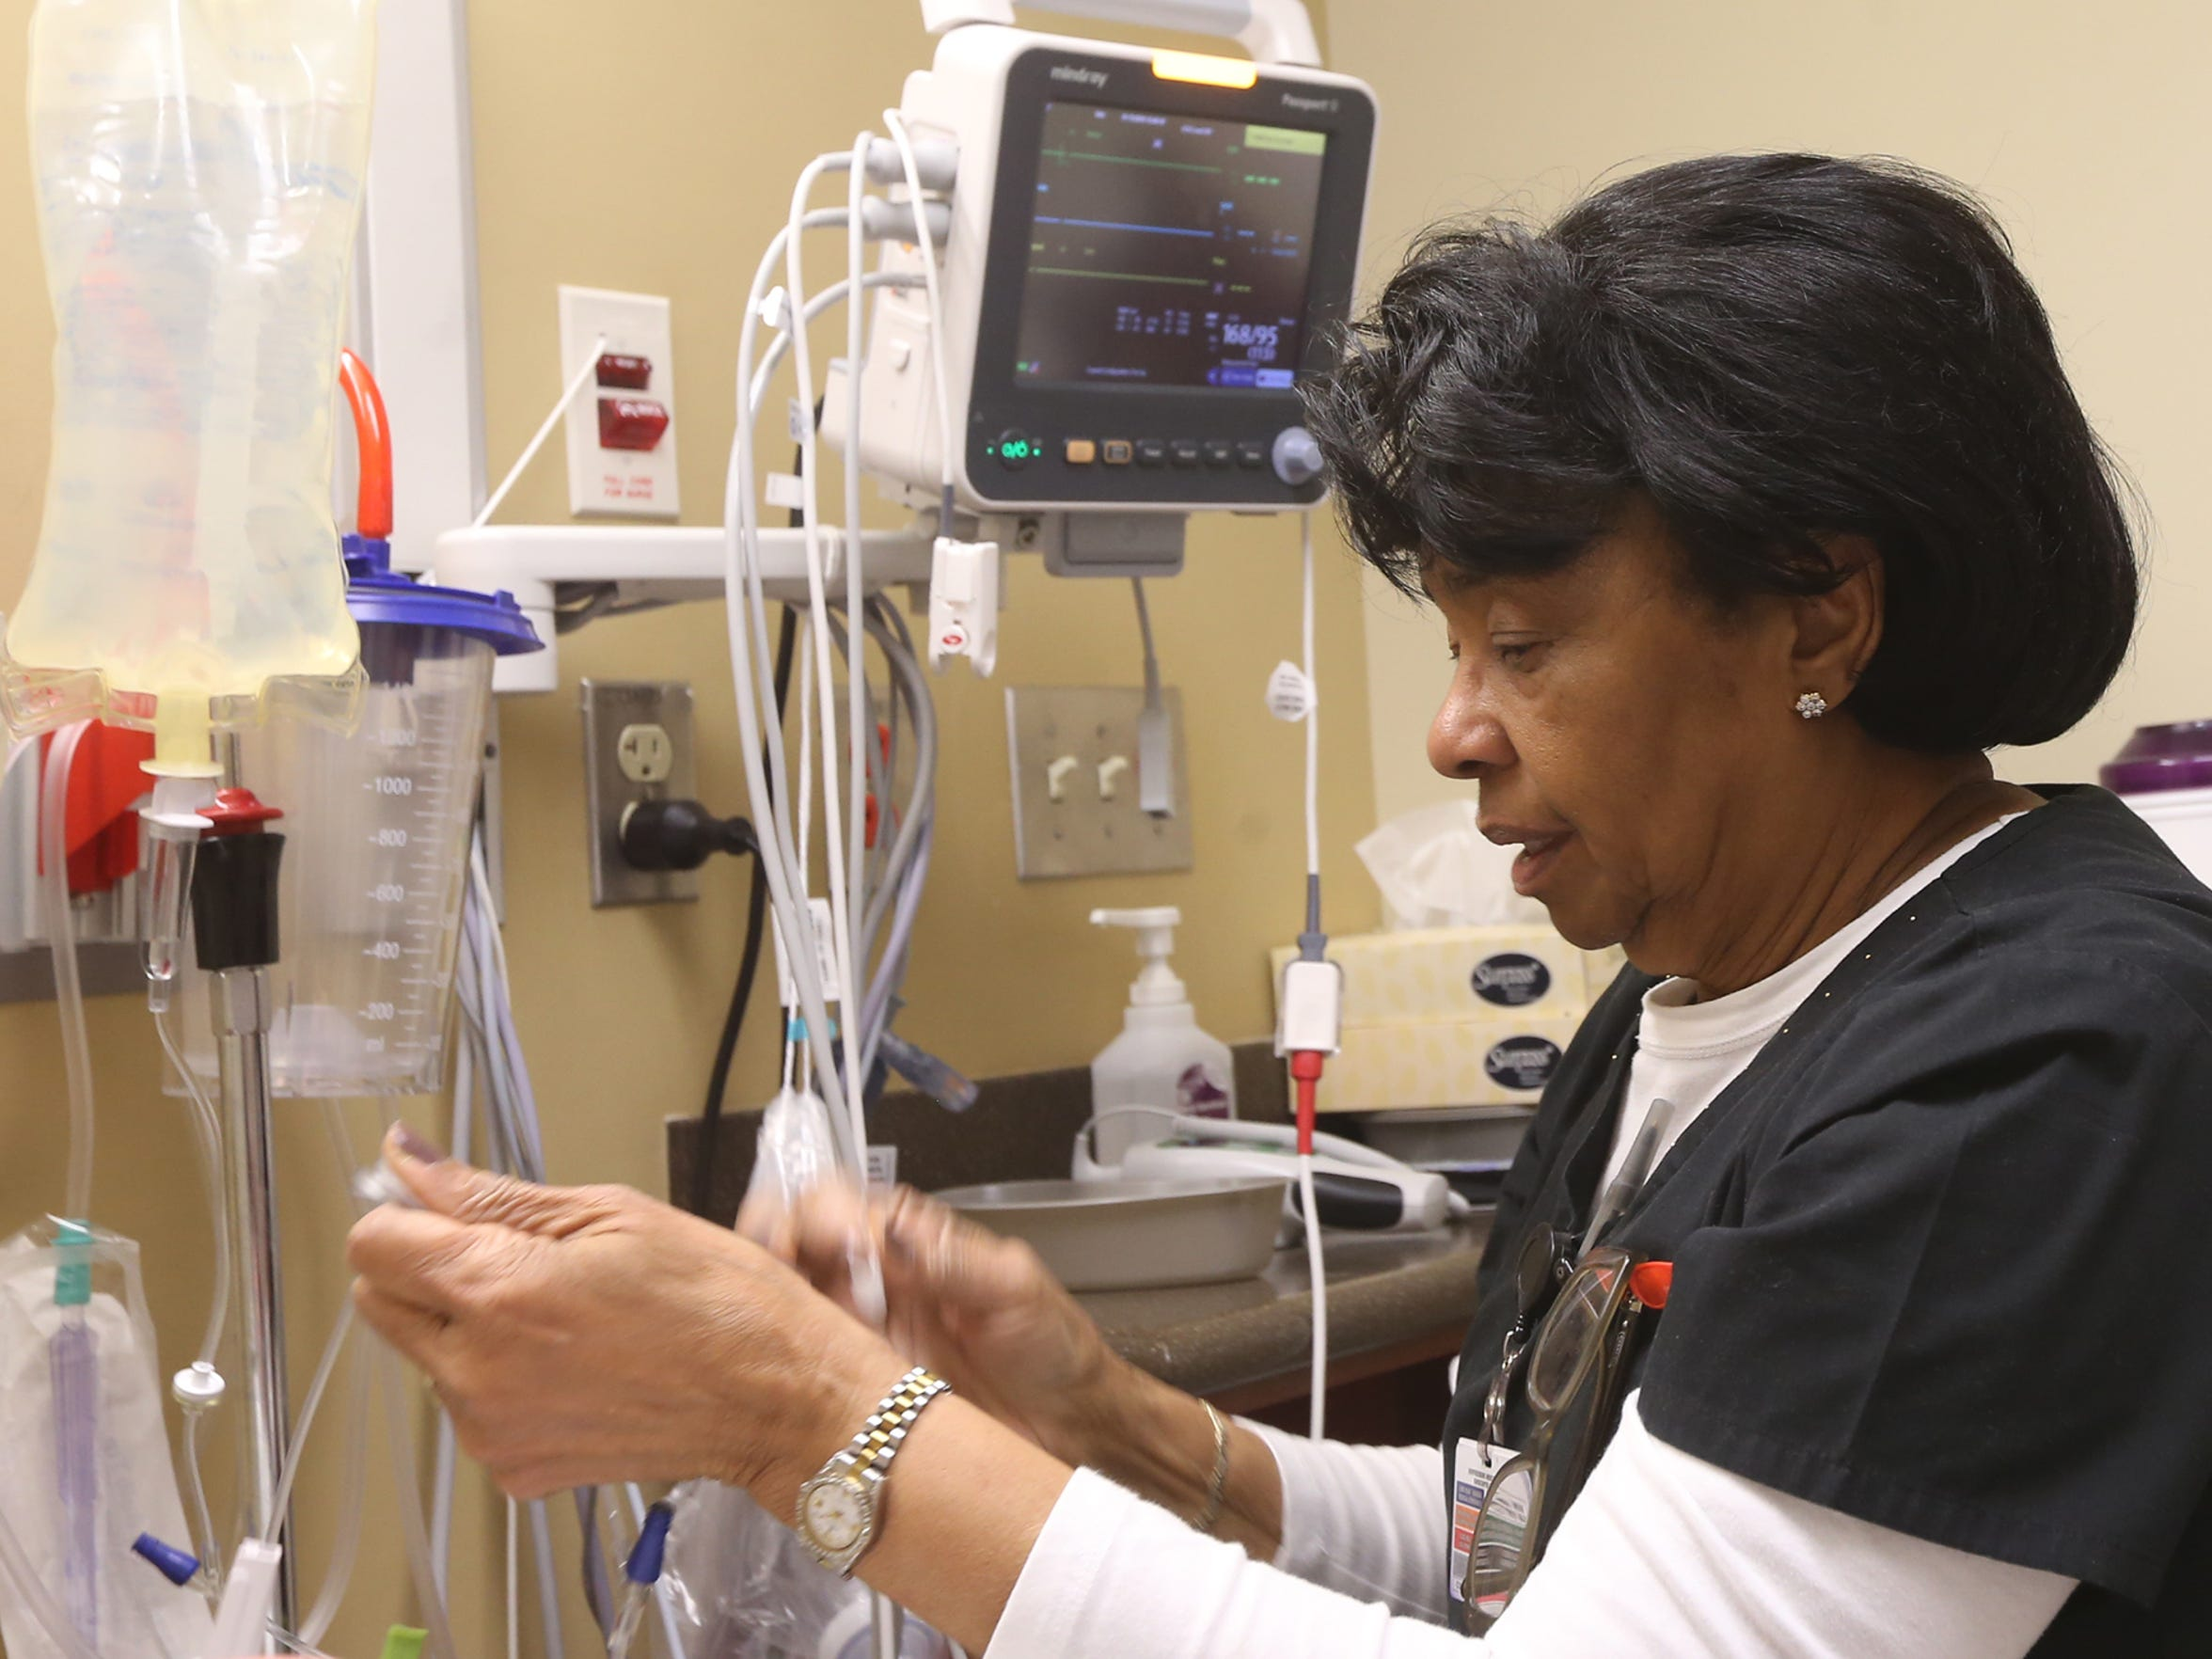 Johnnie Phillips, a 78-year-old a nurse at Murfreesboro